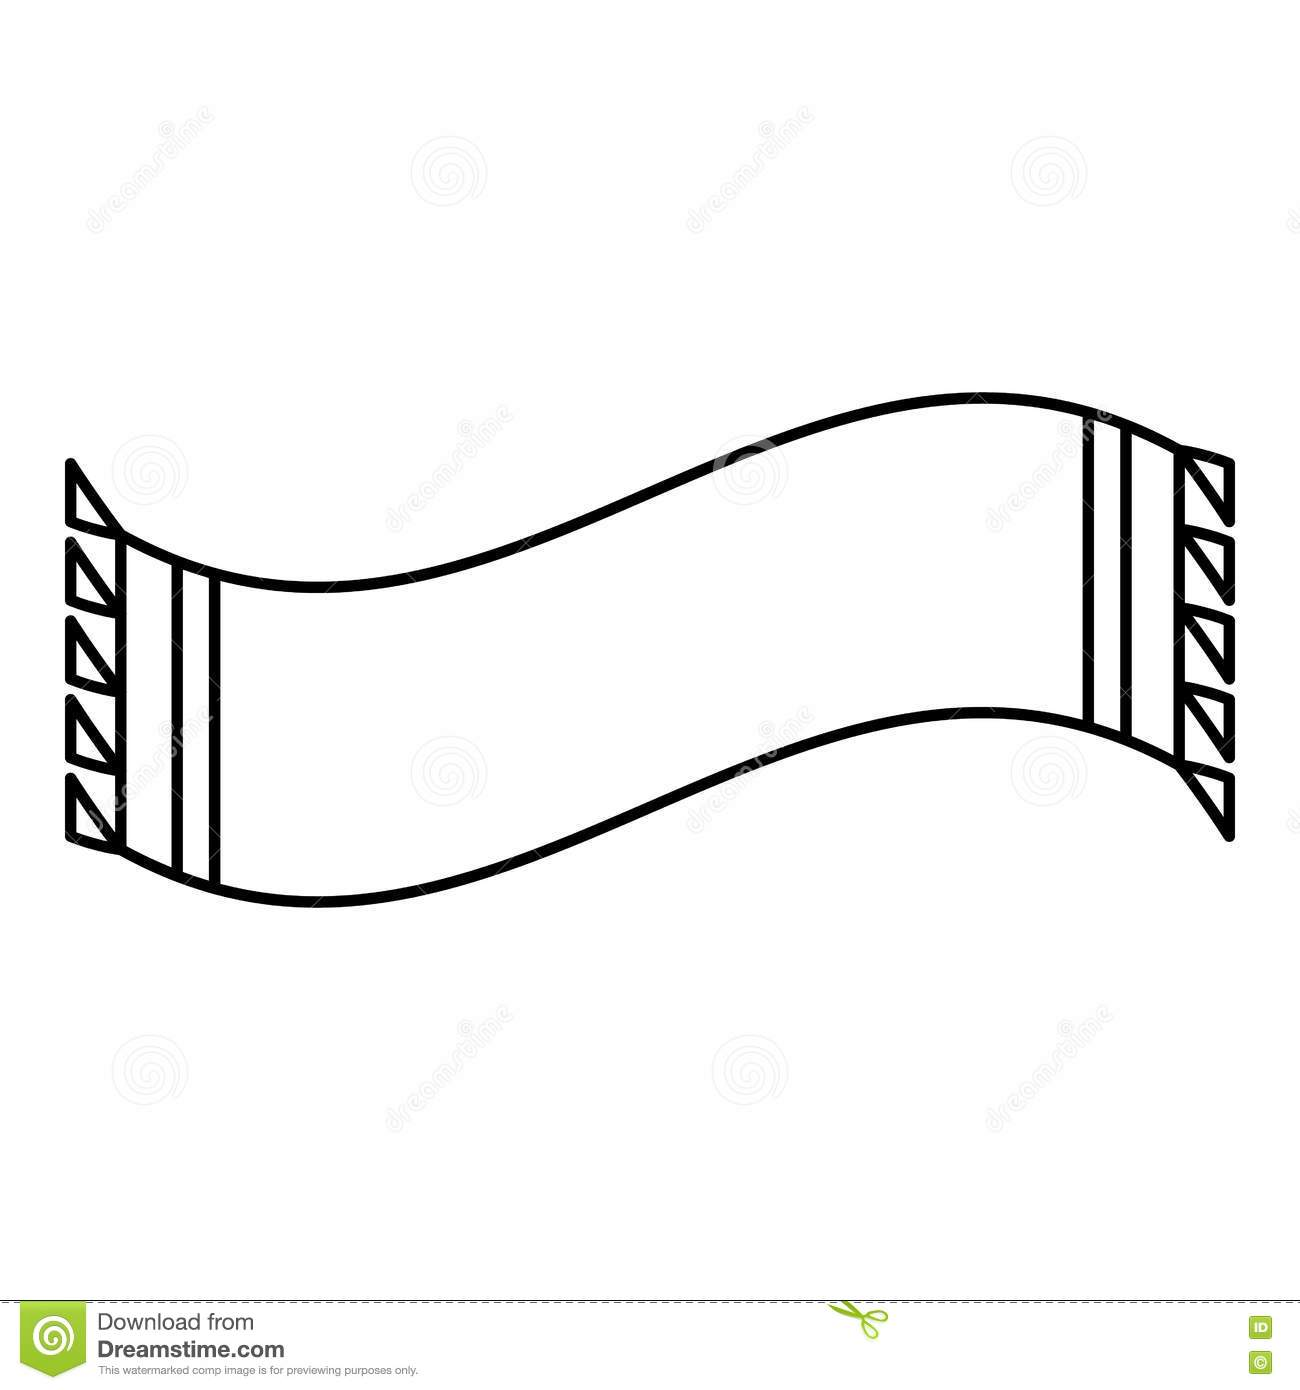 Scarf icon, outline style stock vector. Illustration of